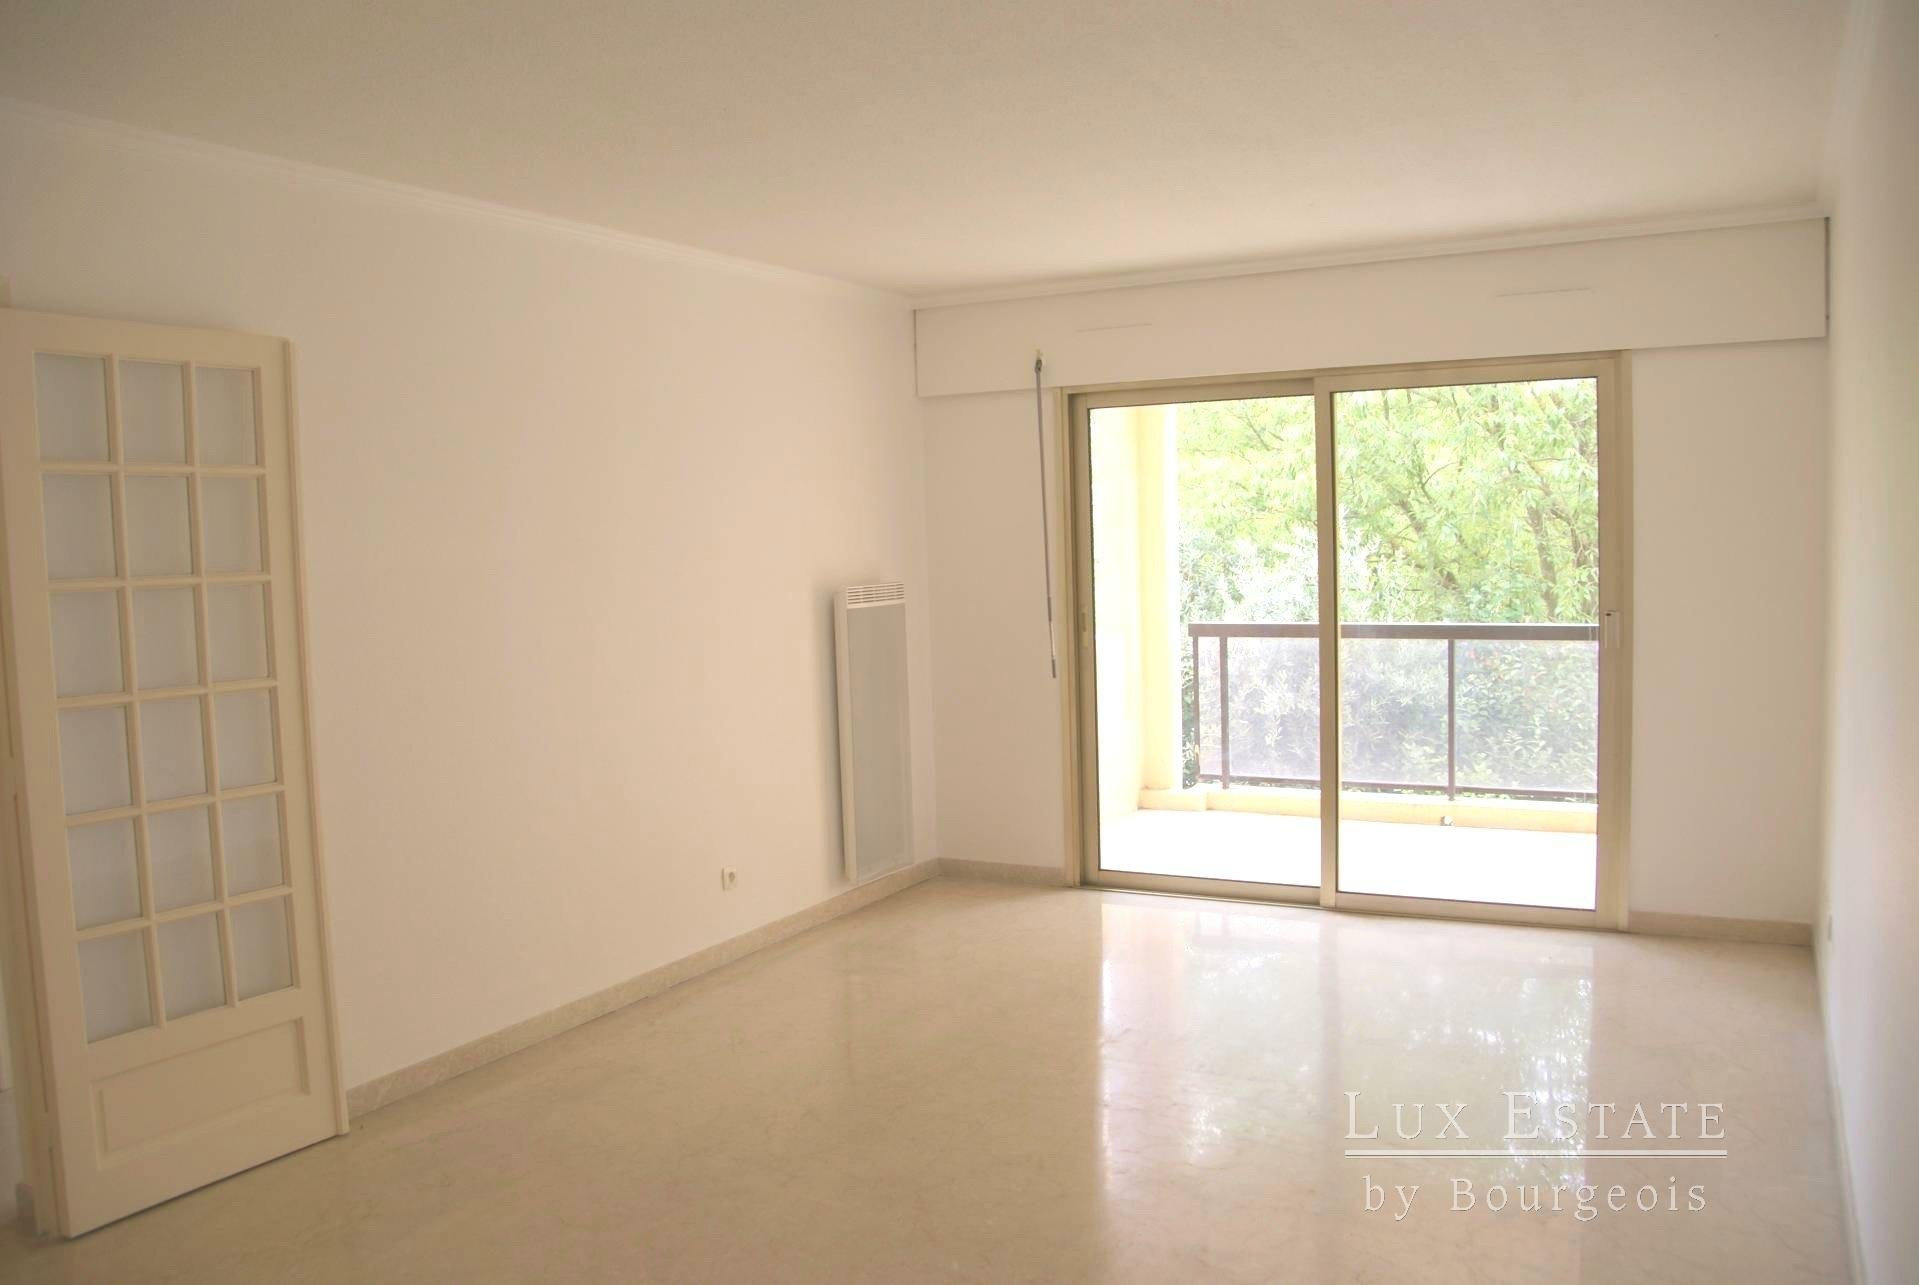 Mougins, Tournamy area 3-rooms flat with parking space